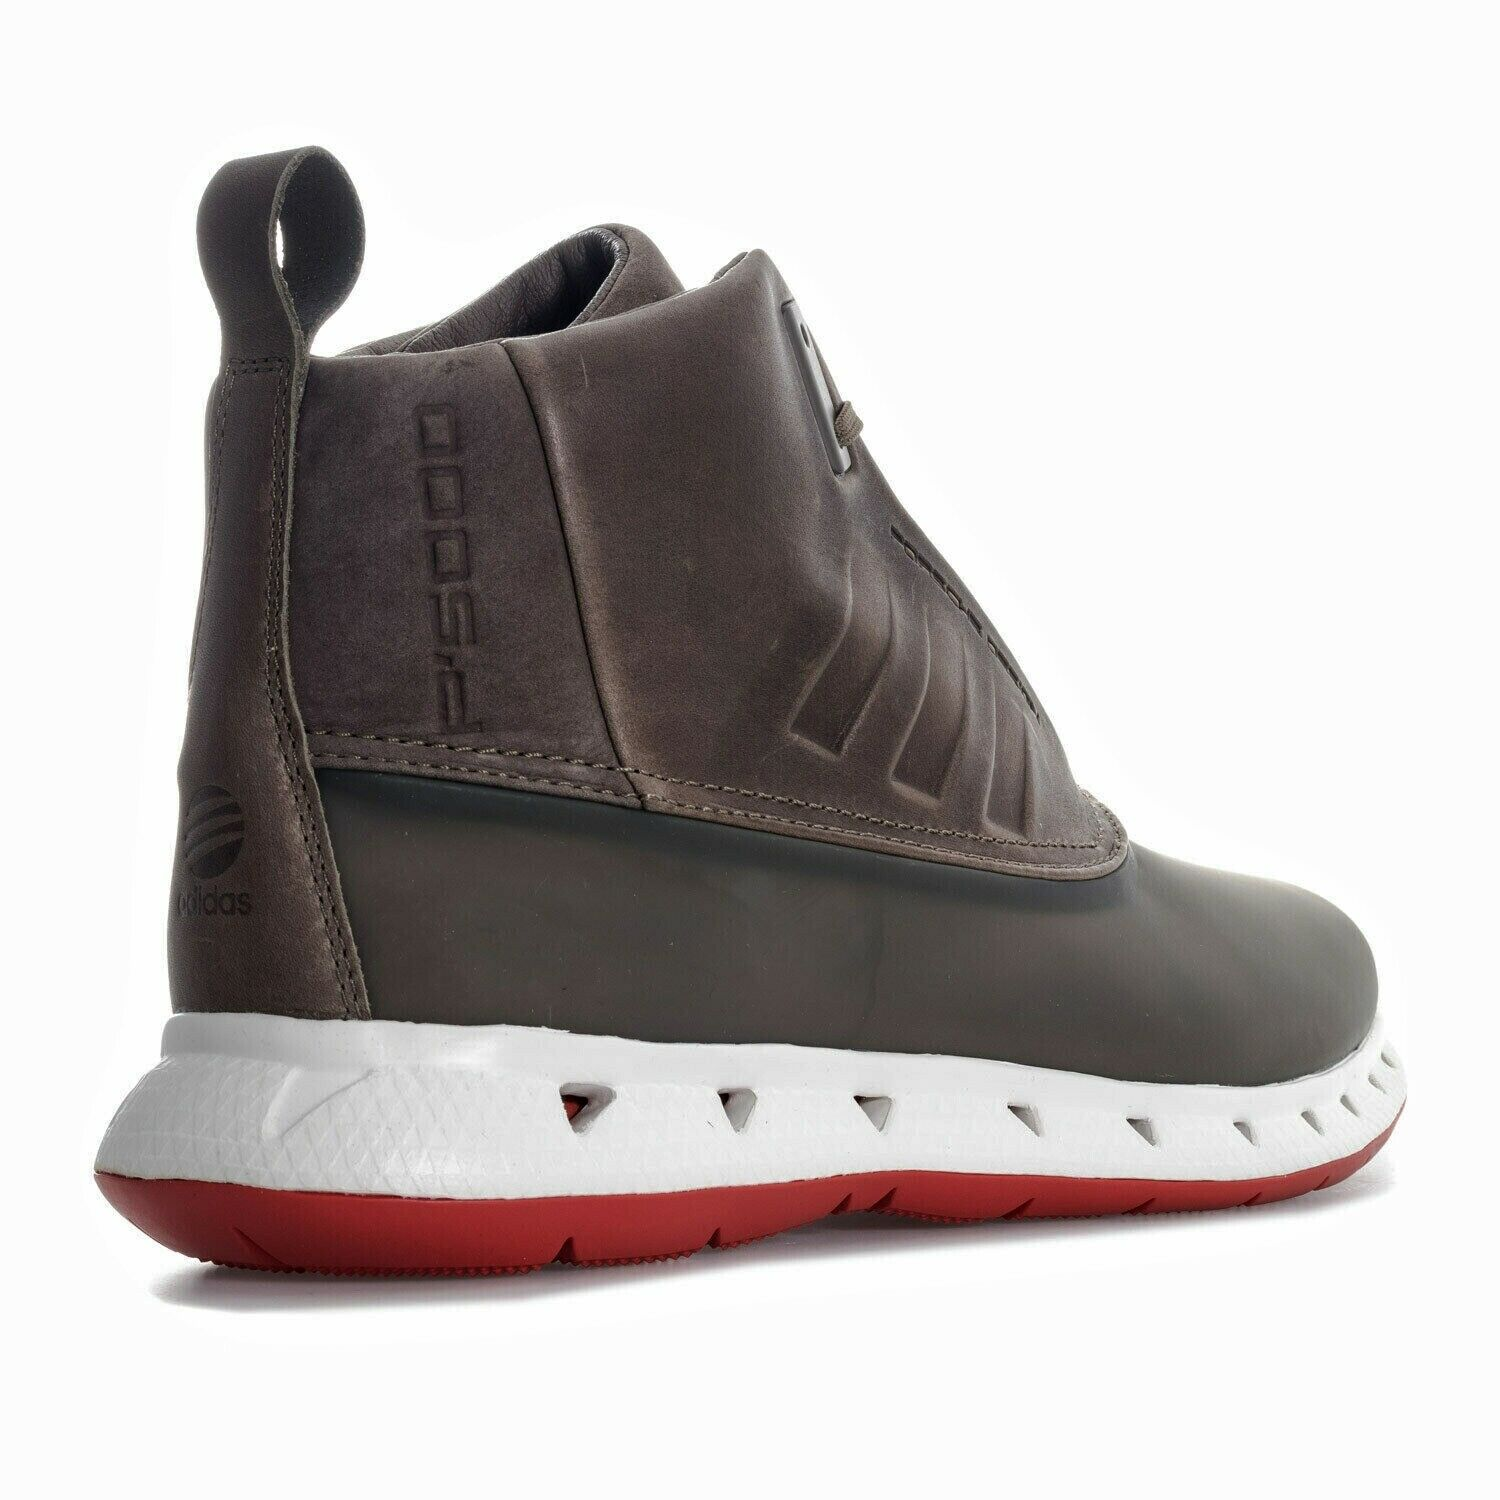 ADIDAS PORSCHE DESIGN Grey Snow Easy Winter Boots Shoes UK7 US7.5 NEW & BOXED